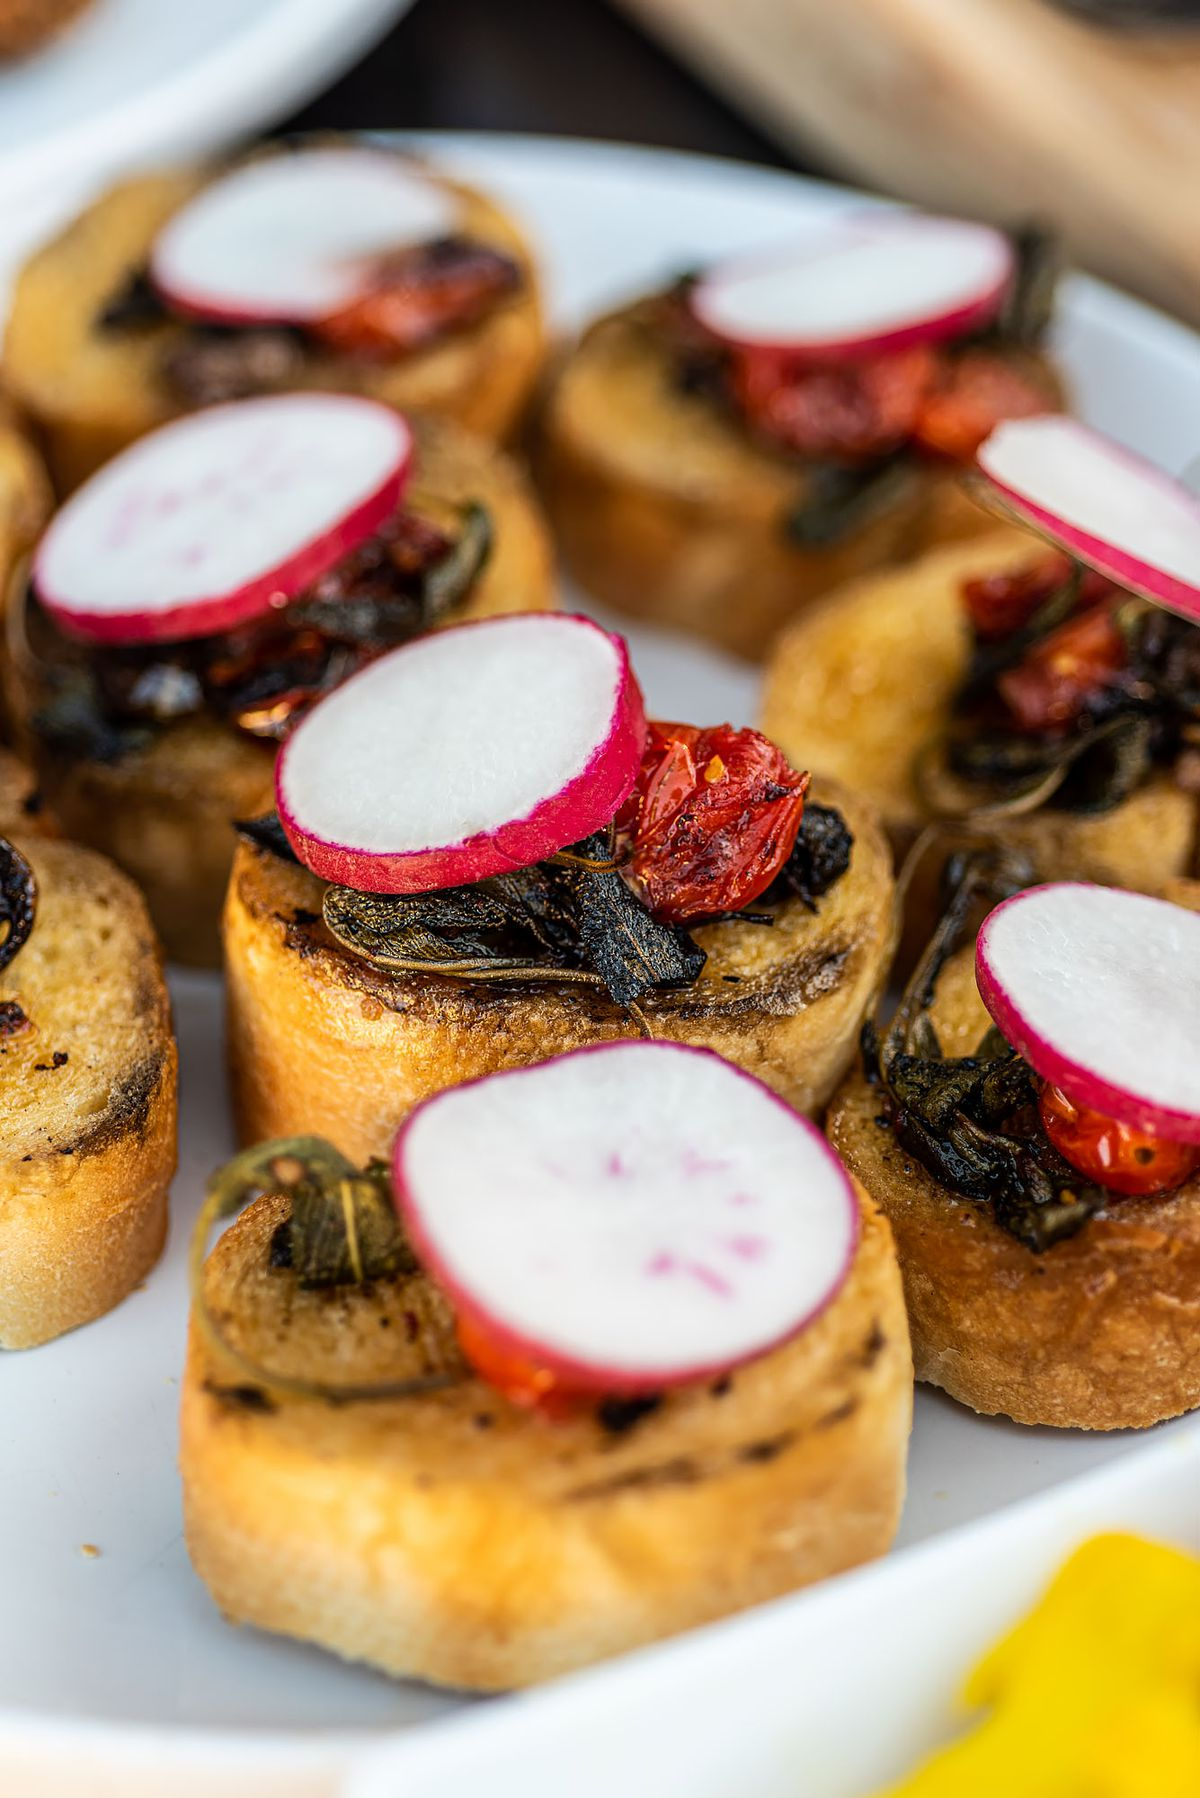 Bone marrow over toast with a large ring of radish on top.